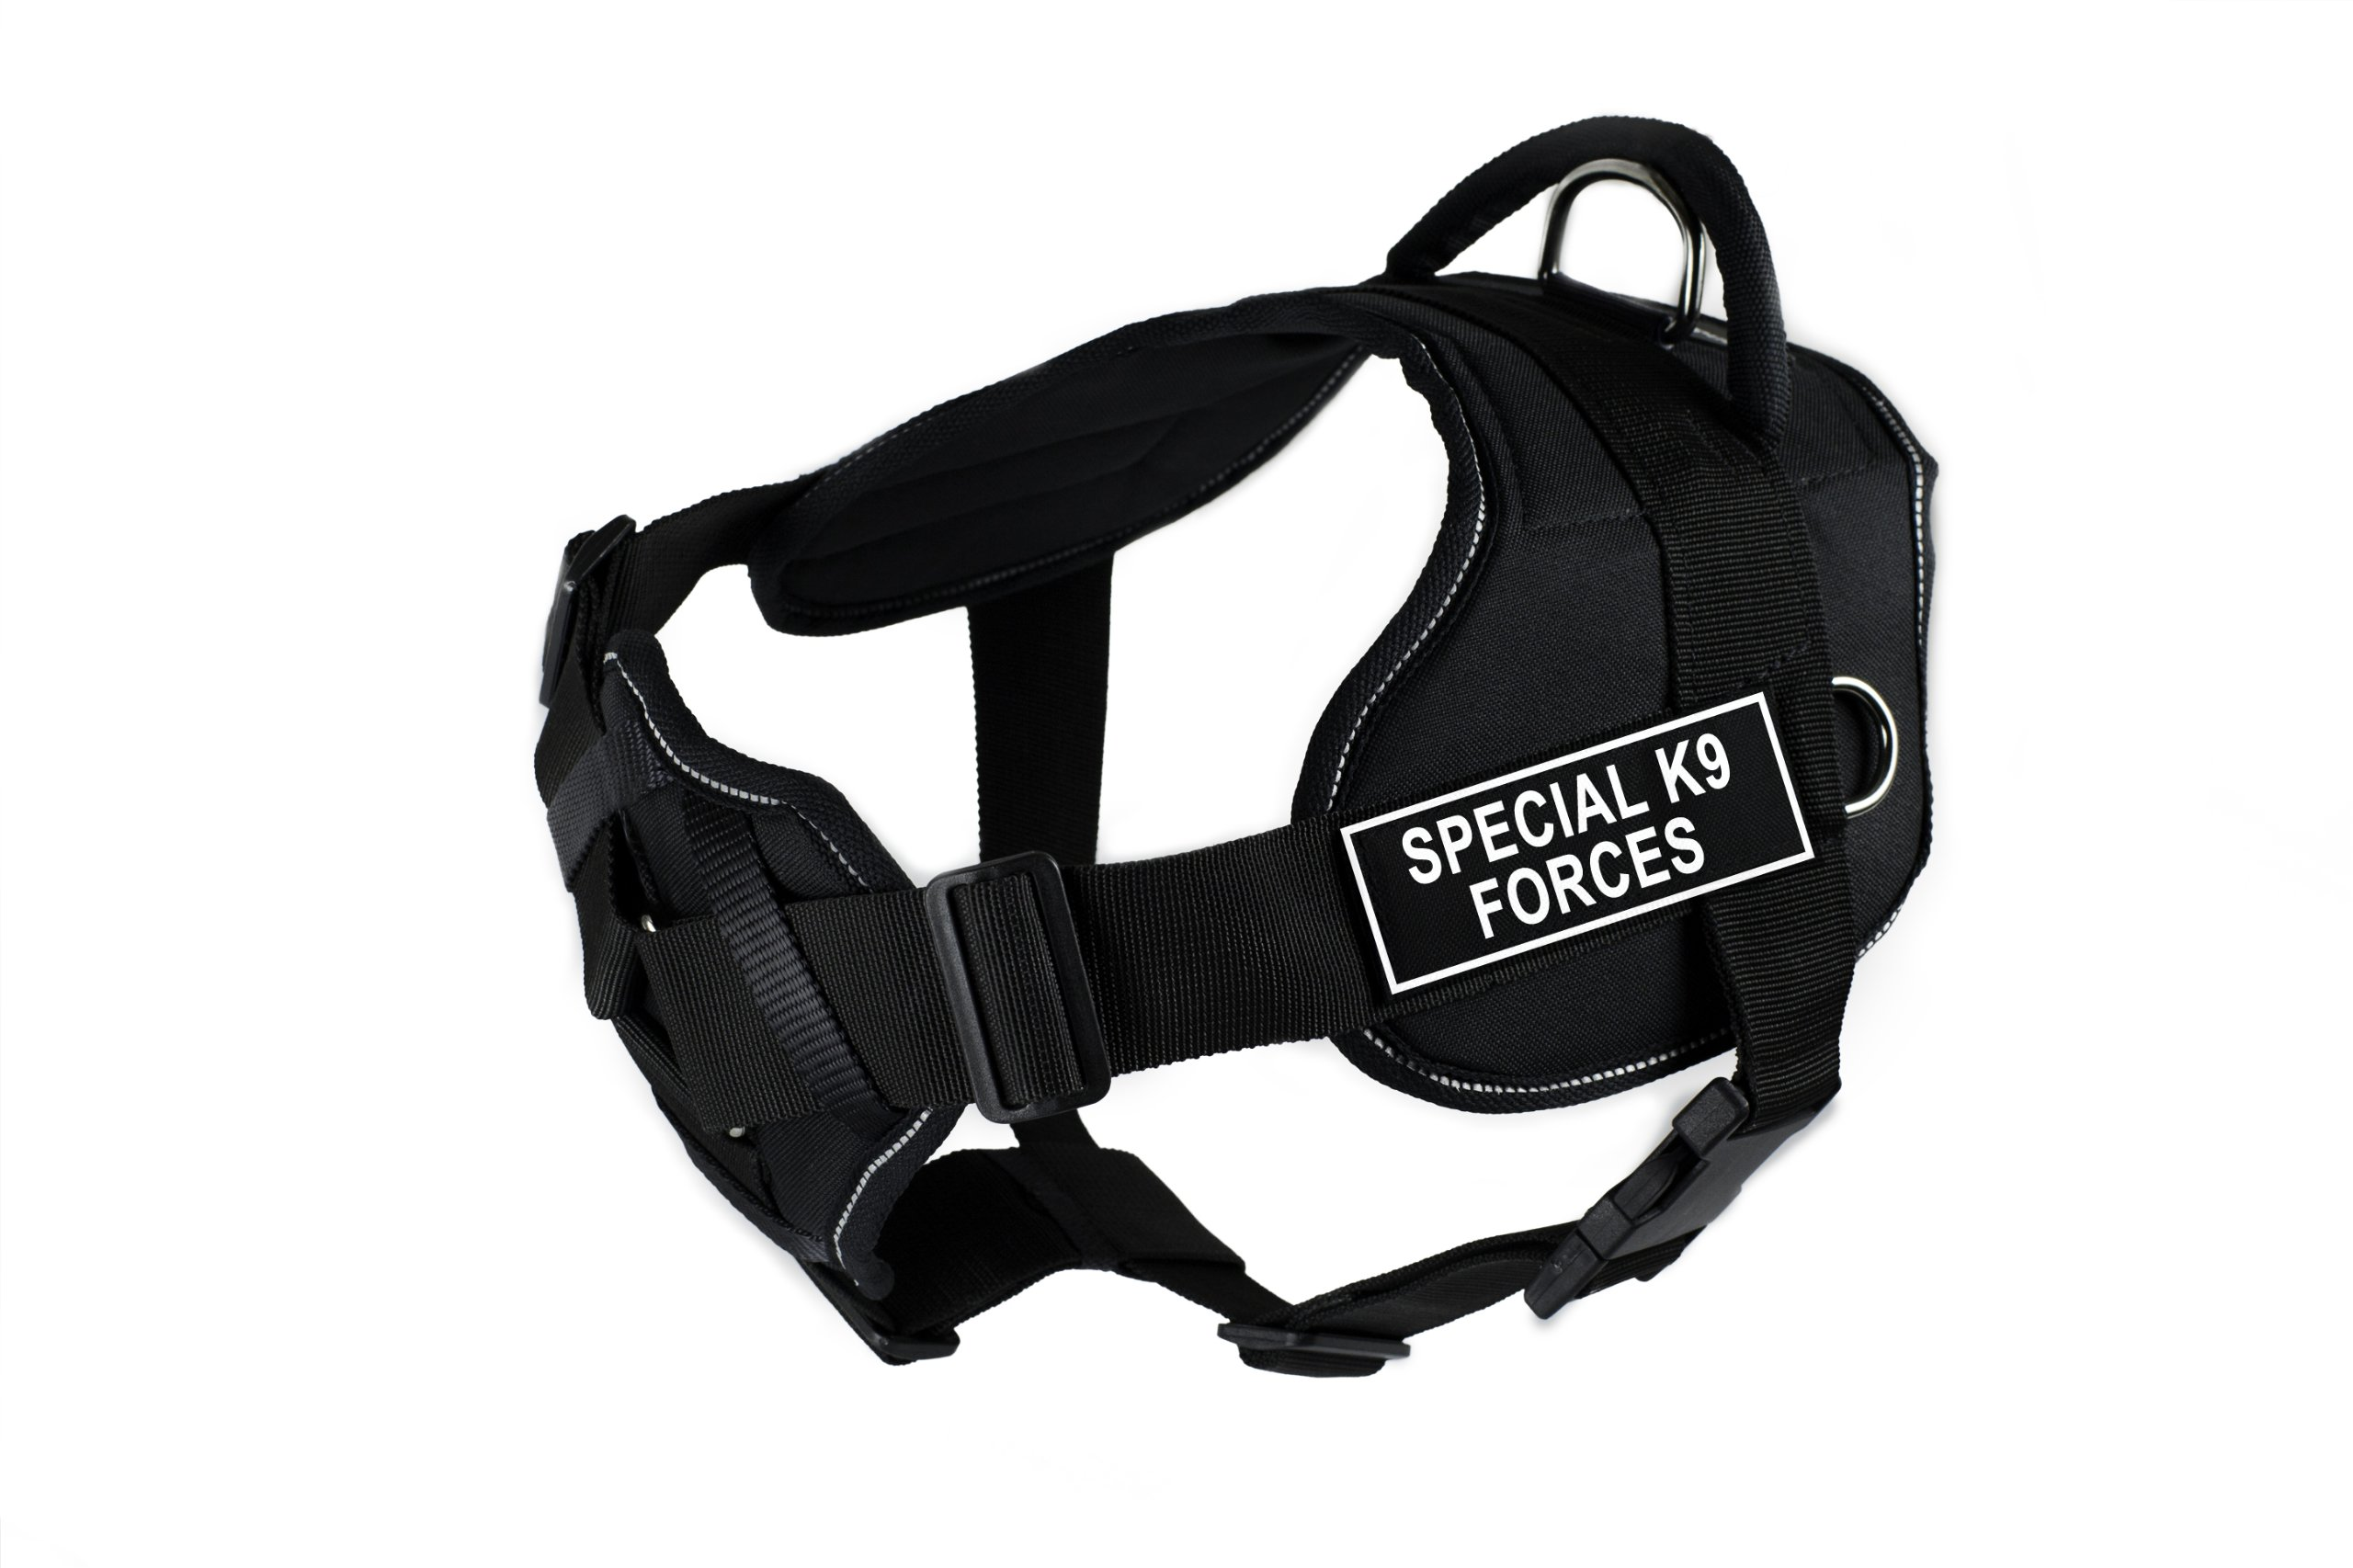 Dean & Tyler D&T FUN-CH SK9F RT-L Fun Harness with Padded Chest Piece, Special K9 Forces, Large, Black with Reflective Trim